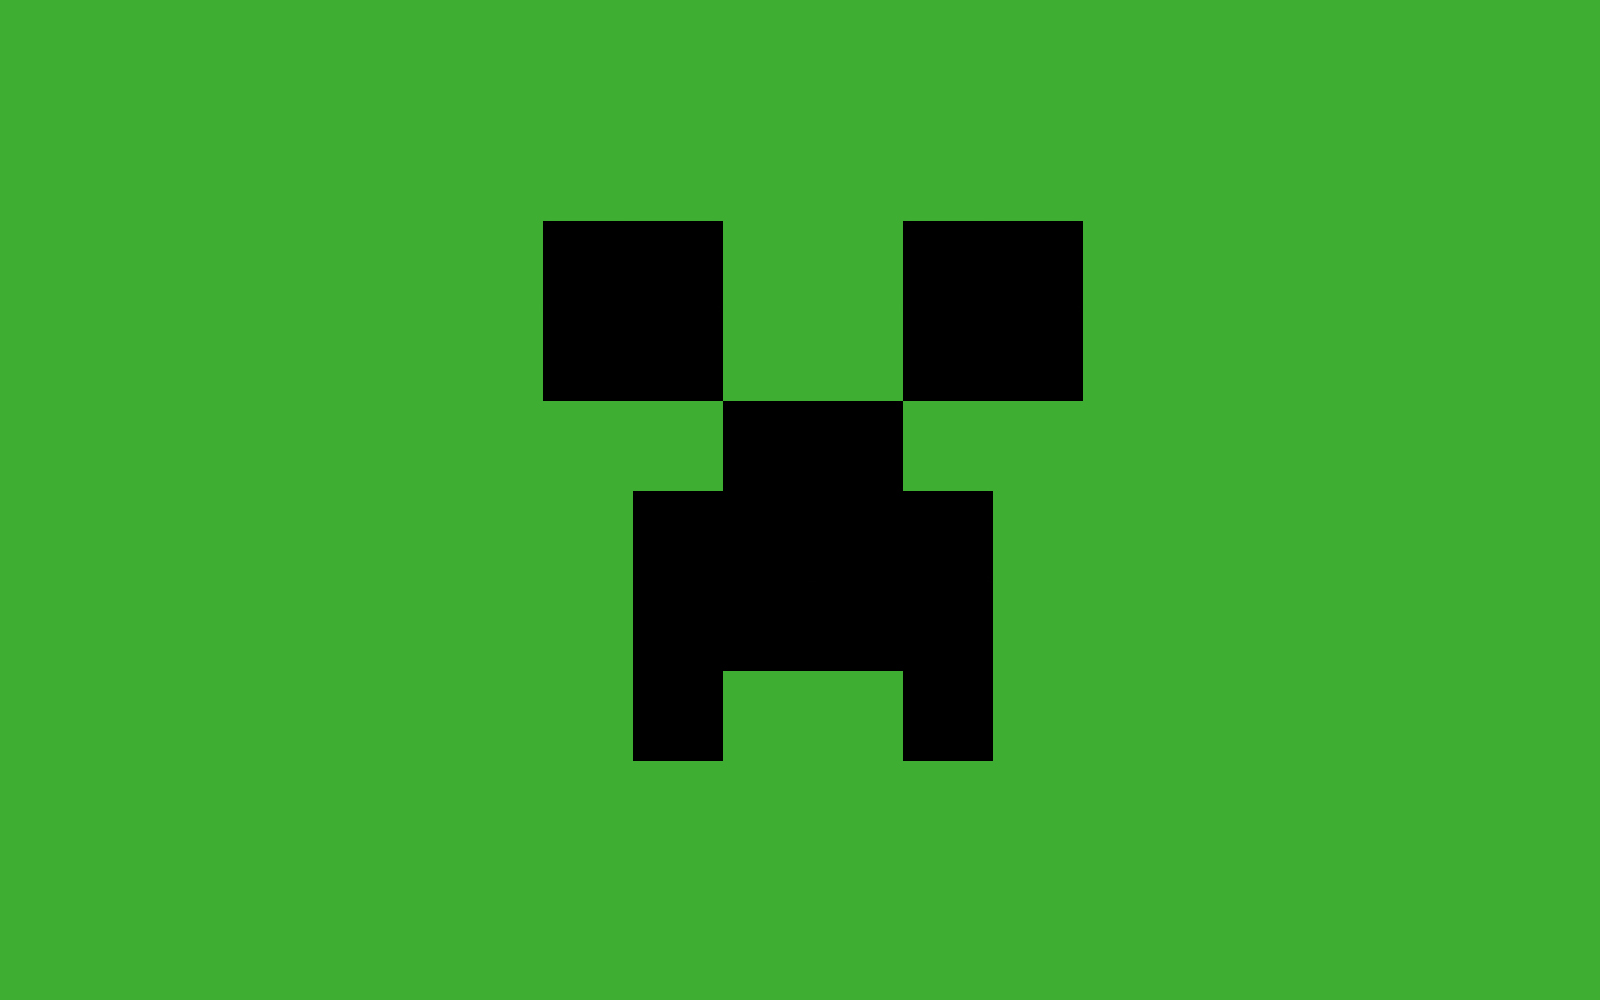 Clipart Of The Minecraft Creeper Wallpaper Free Image